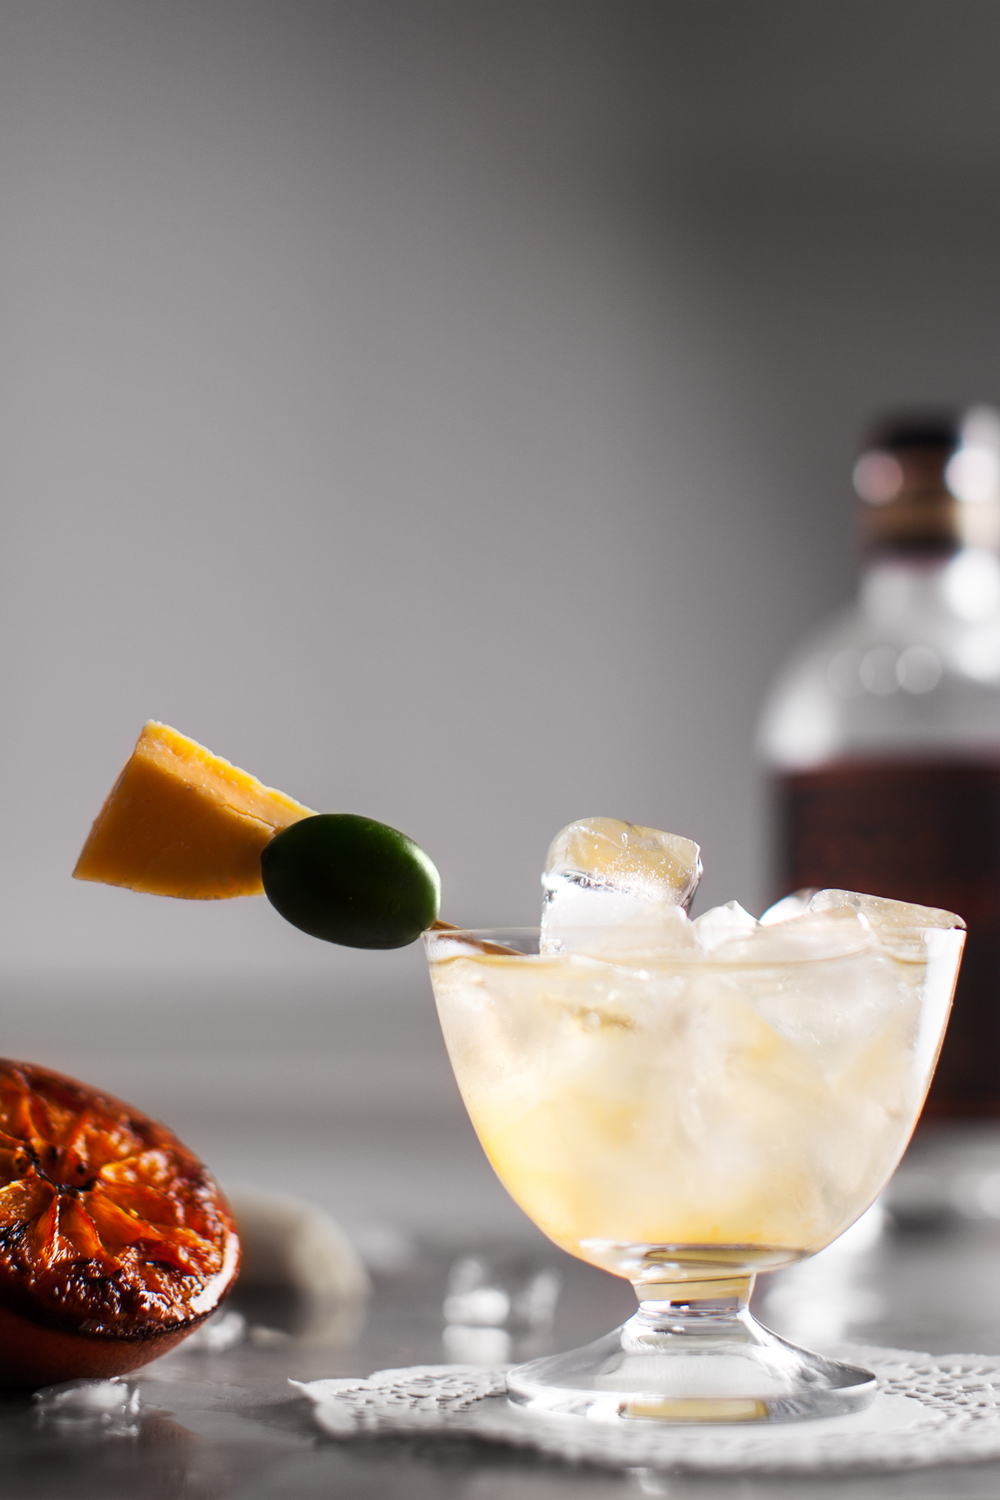 Roasted Orange G+T.  Recipe and styling by   Cle-ann  , photo by   Hugh Adams  .